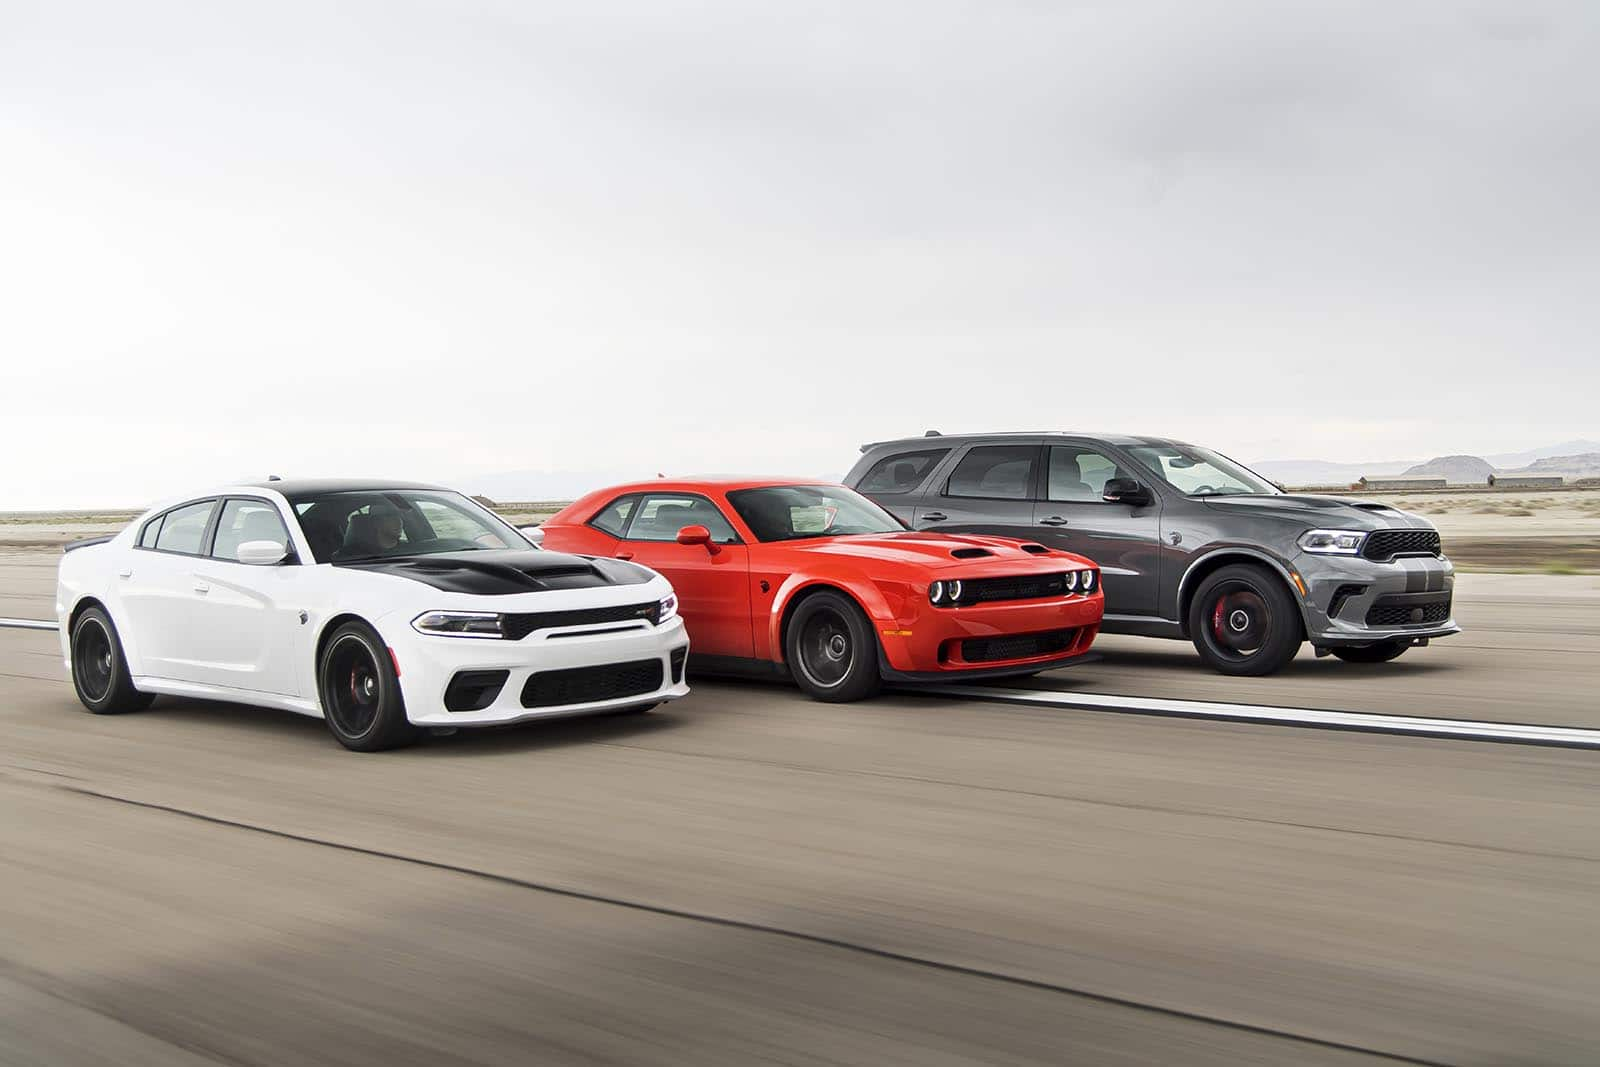 Dodge Ups The Hp Numbers Adds First Durango Hellcat New Charger Redeye The Detroit Bureau